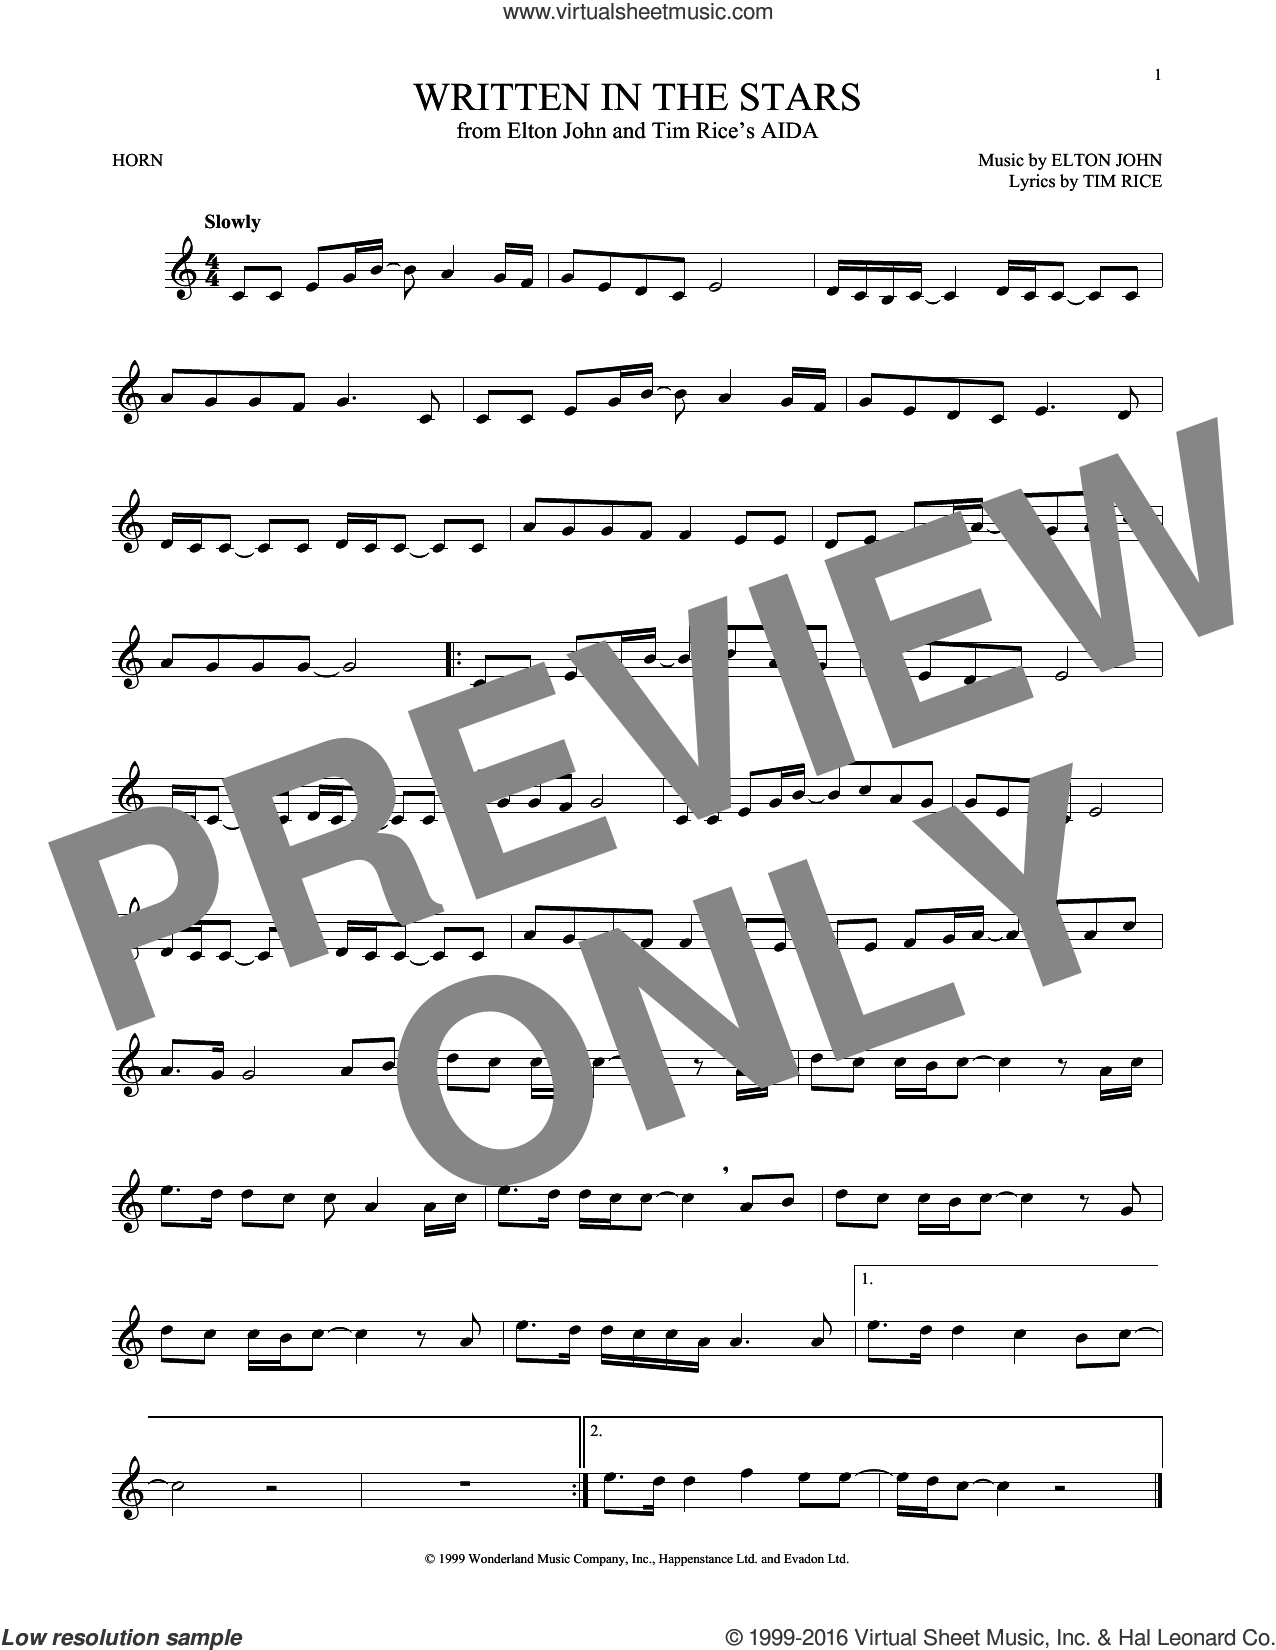 Written In The Stars sheet music for horn solo by Elton John and Tim Rice, intermediate skill level